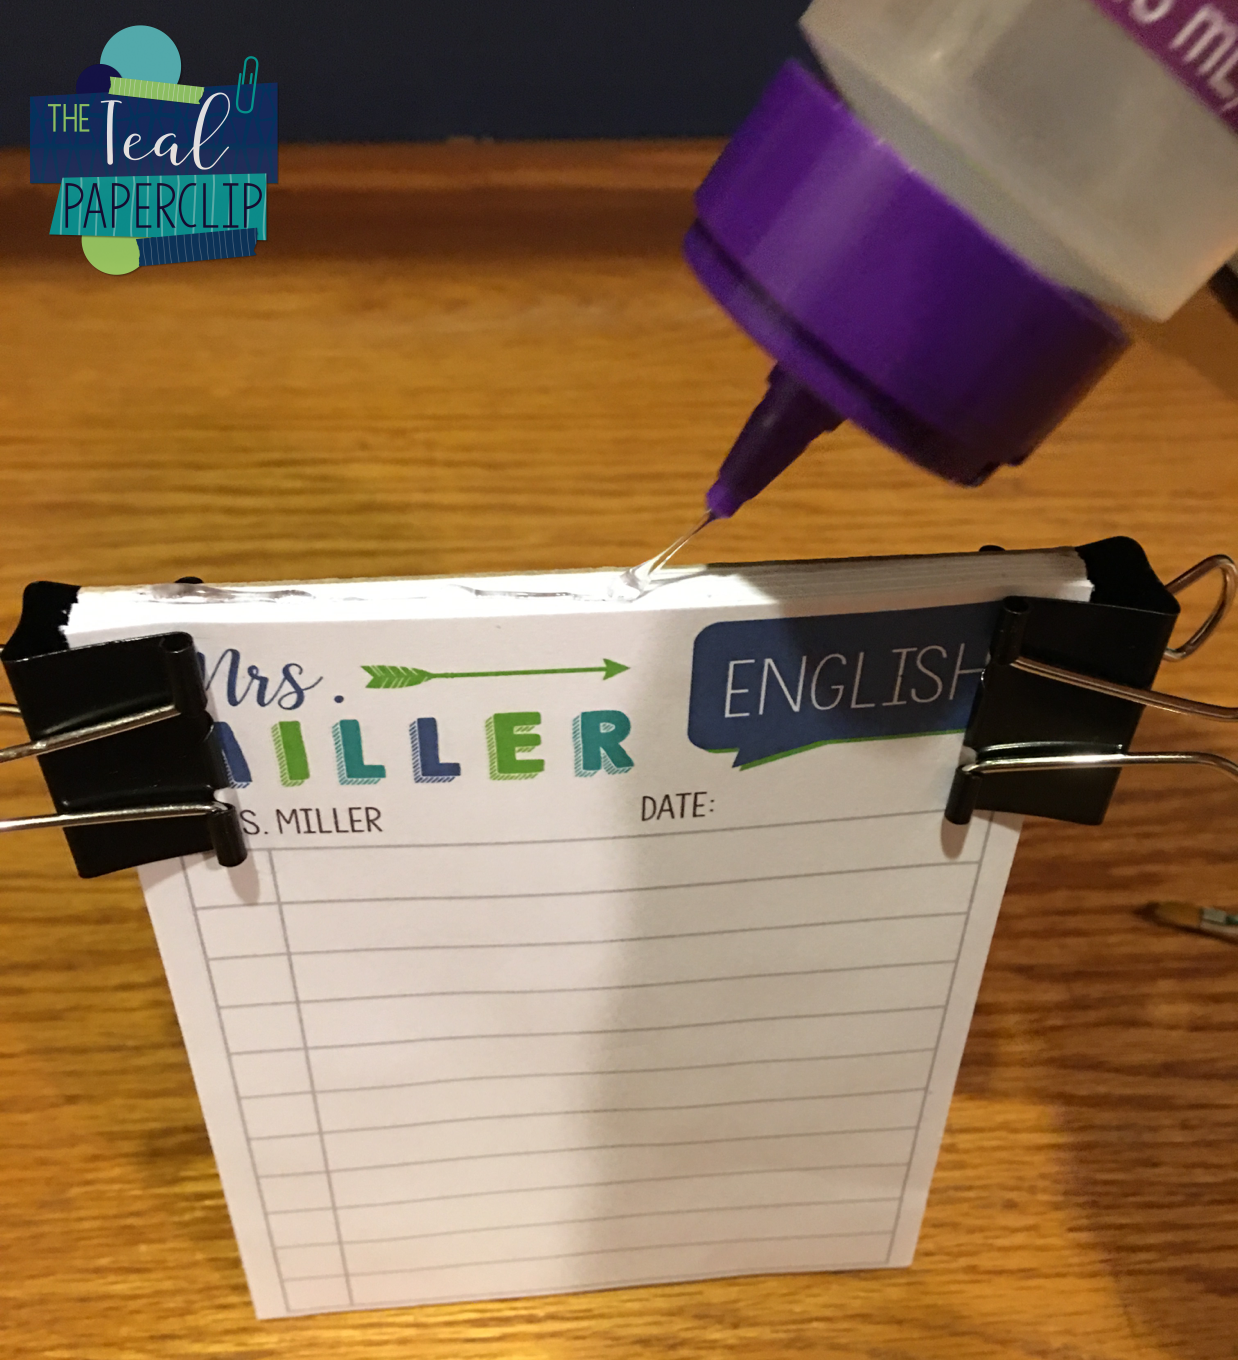 DIY Personalized Notepads: Monday Made It The Teal ...